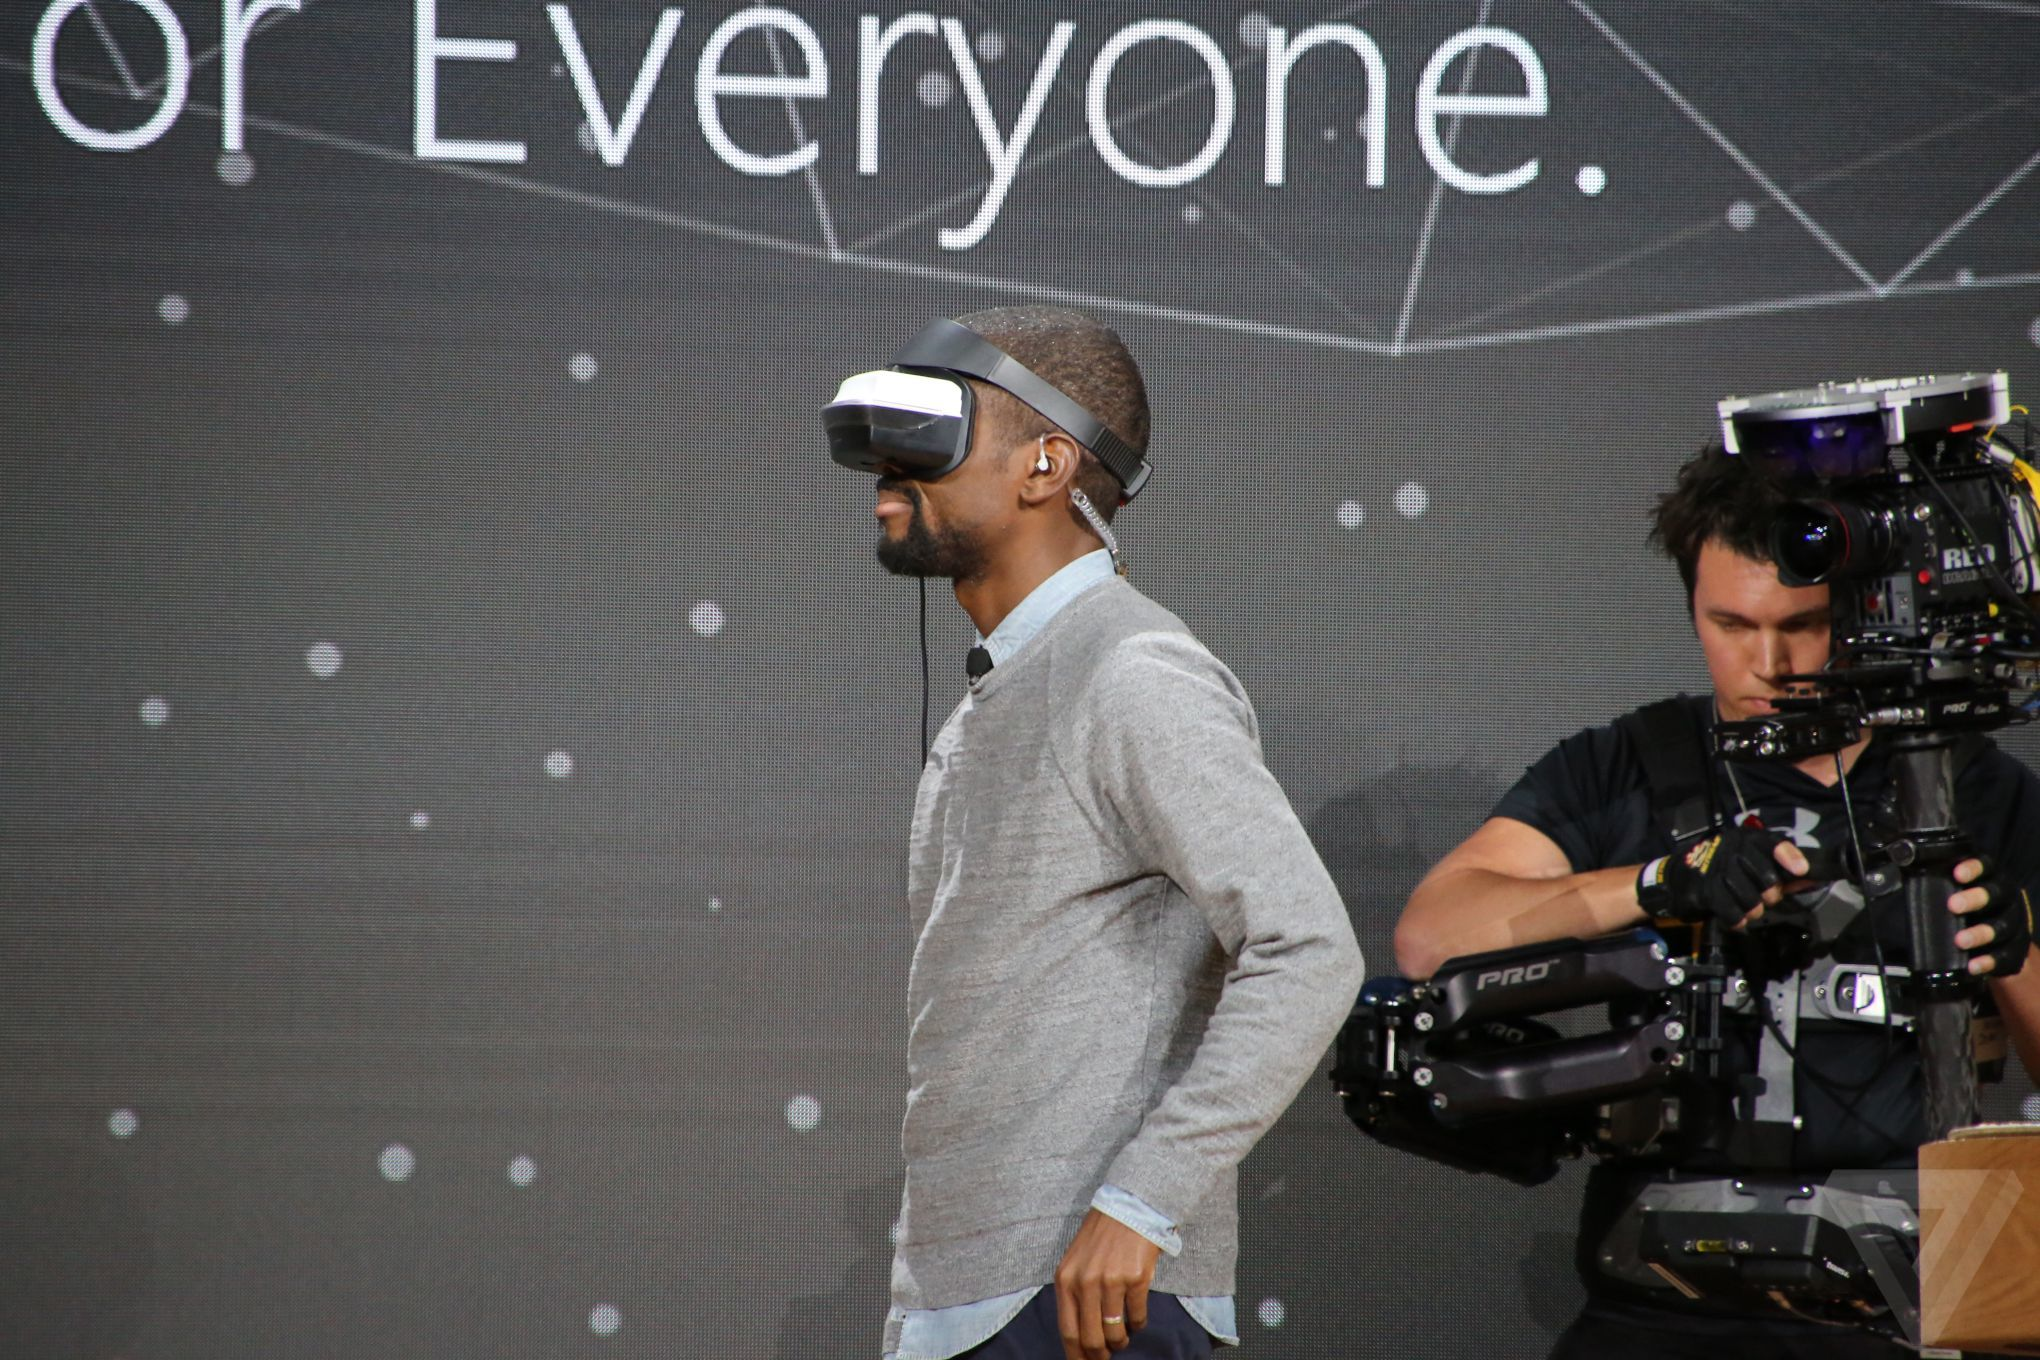 Microsoft Announces New Vr Headsets For Windows 10